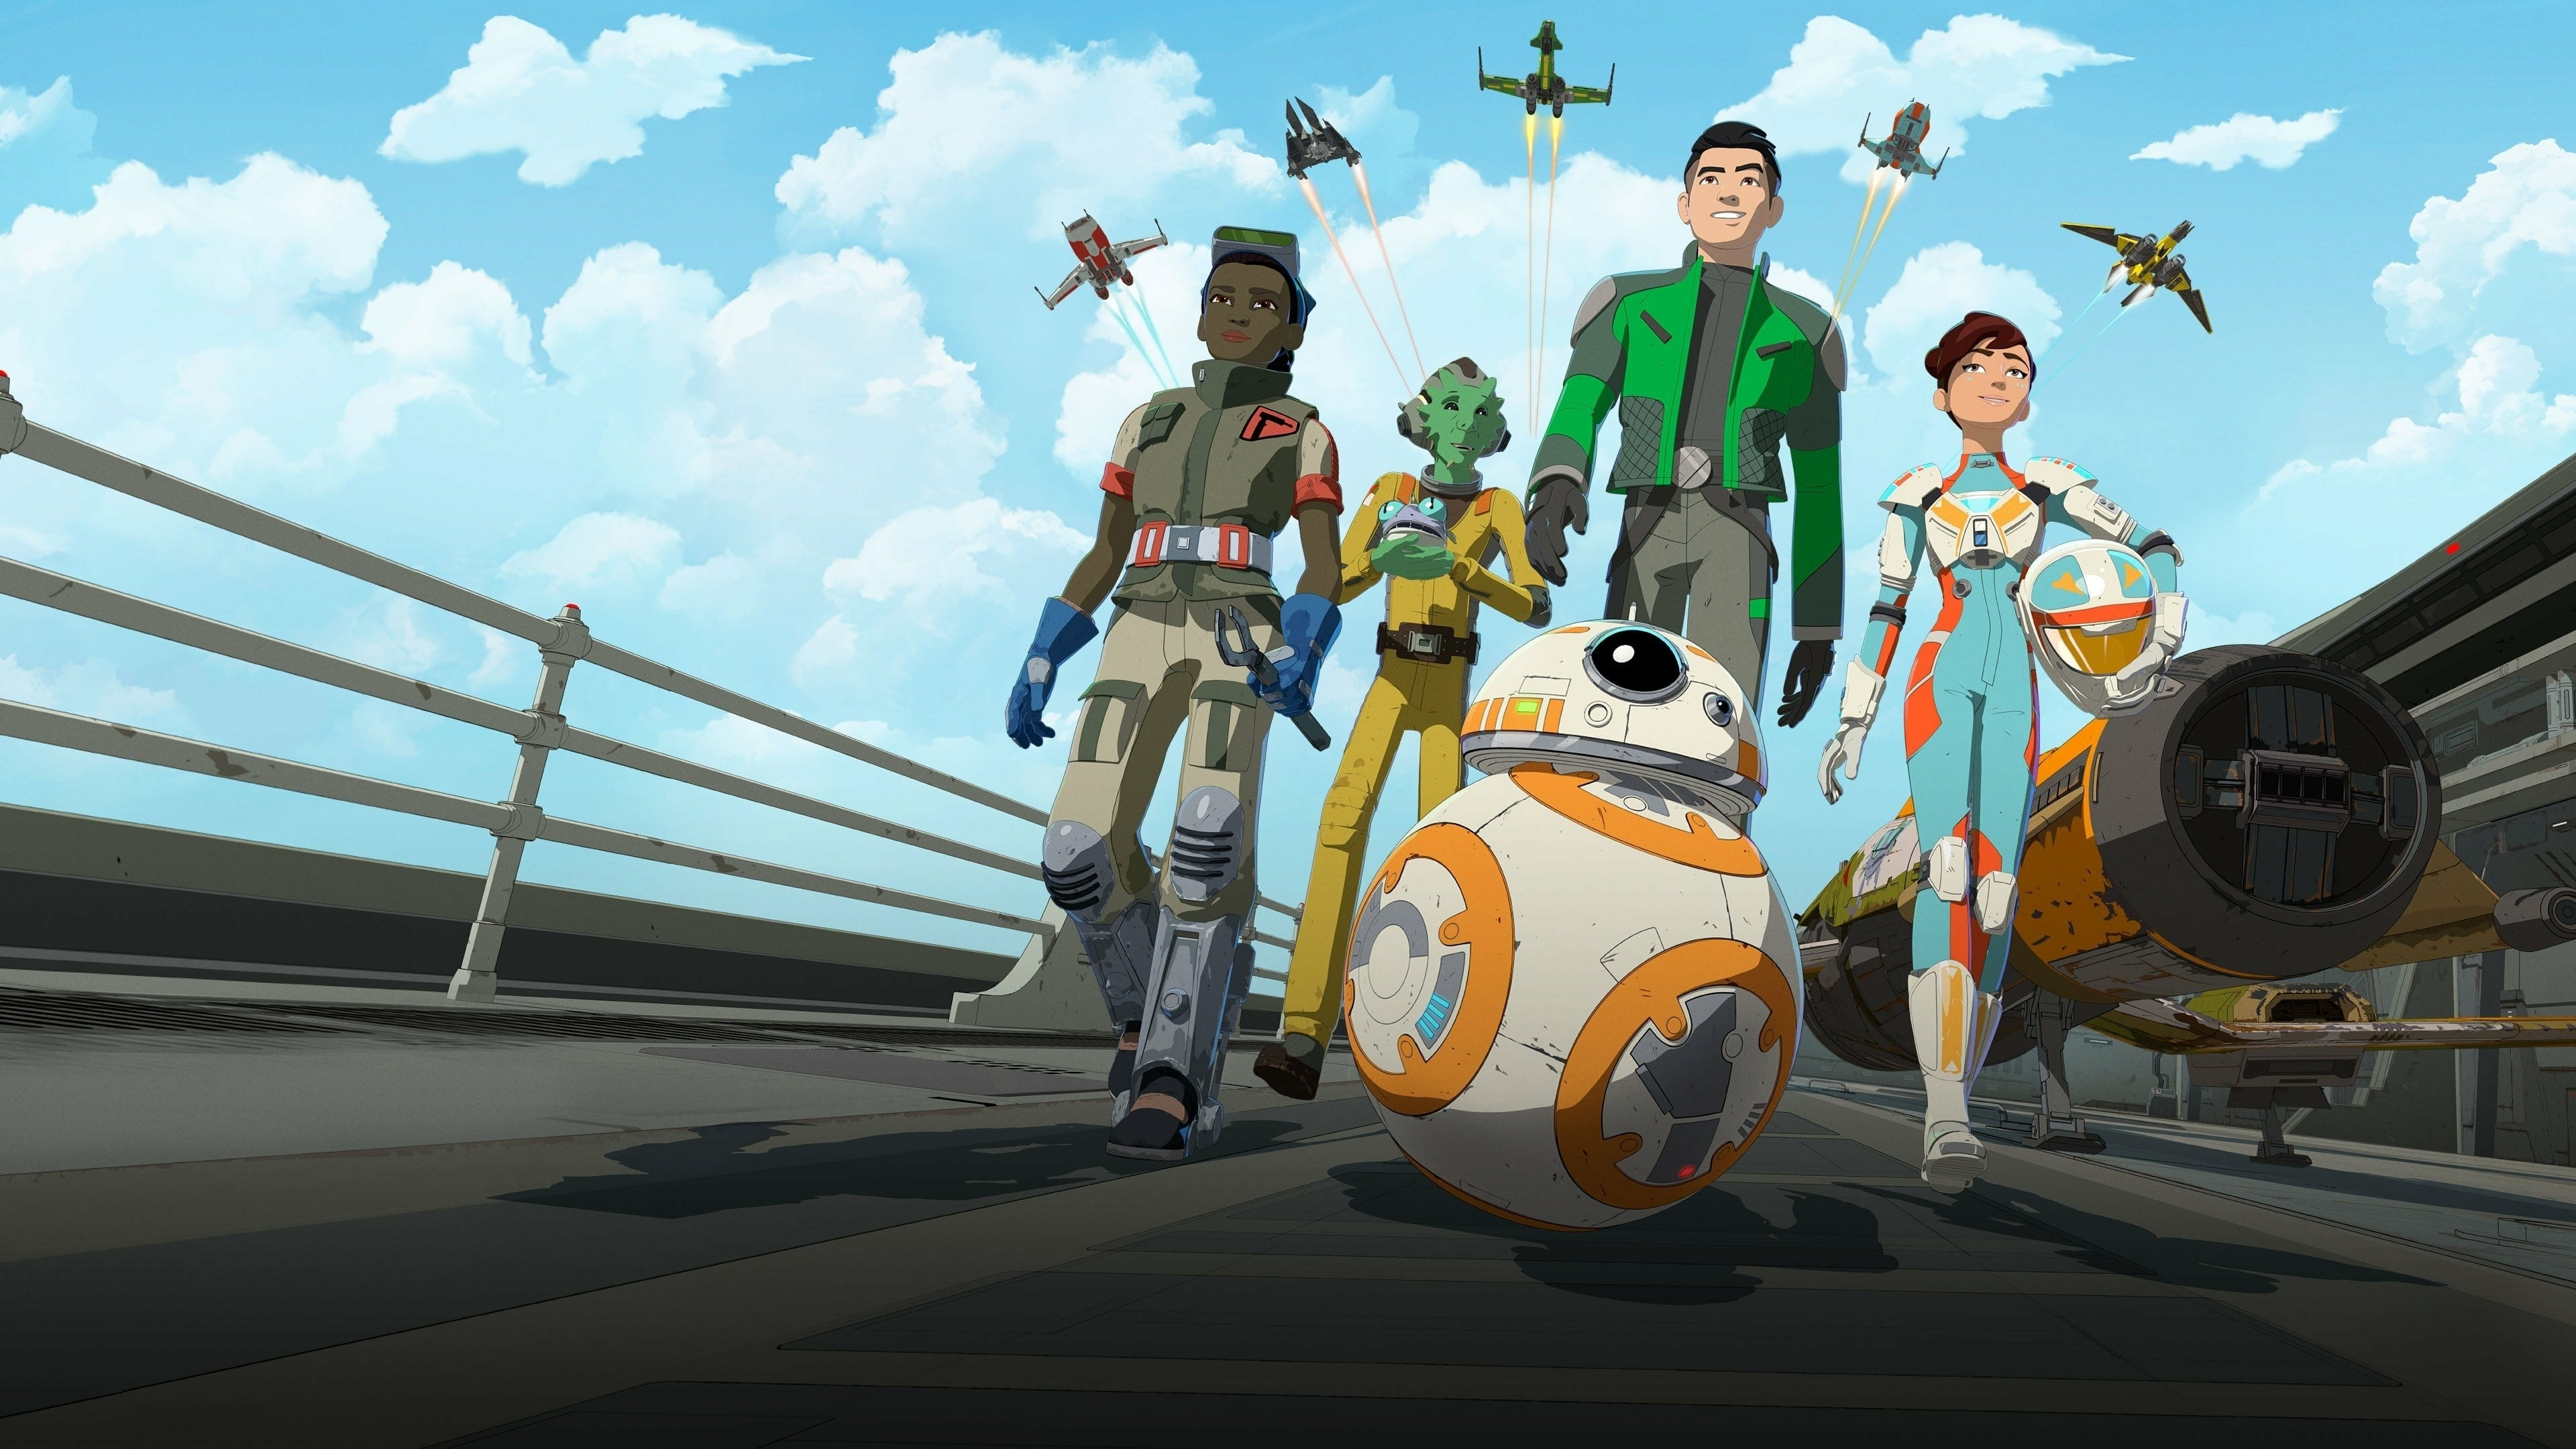 2560x1024 Star Wars Resistance 4k 2560x1024 Resolution Wallpaper Hd Tv Series 4k Wallpapers Images Photos And Background